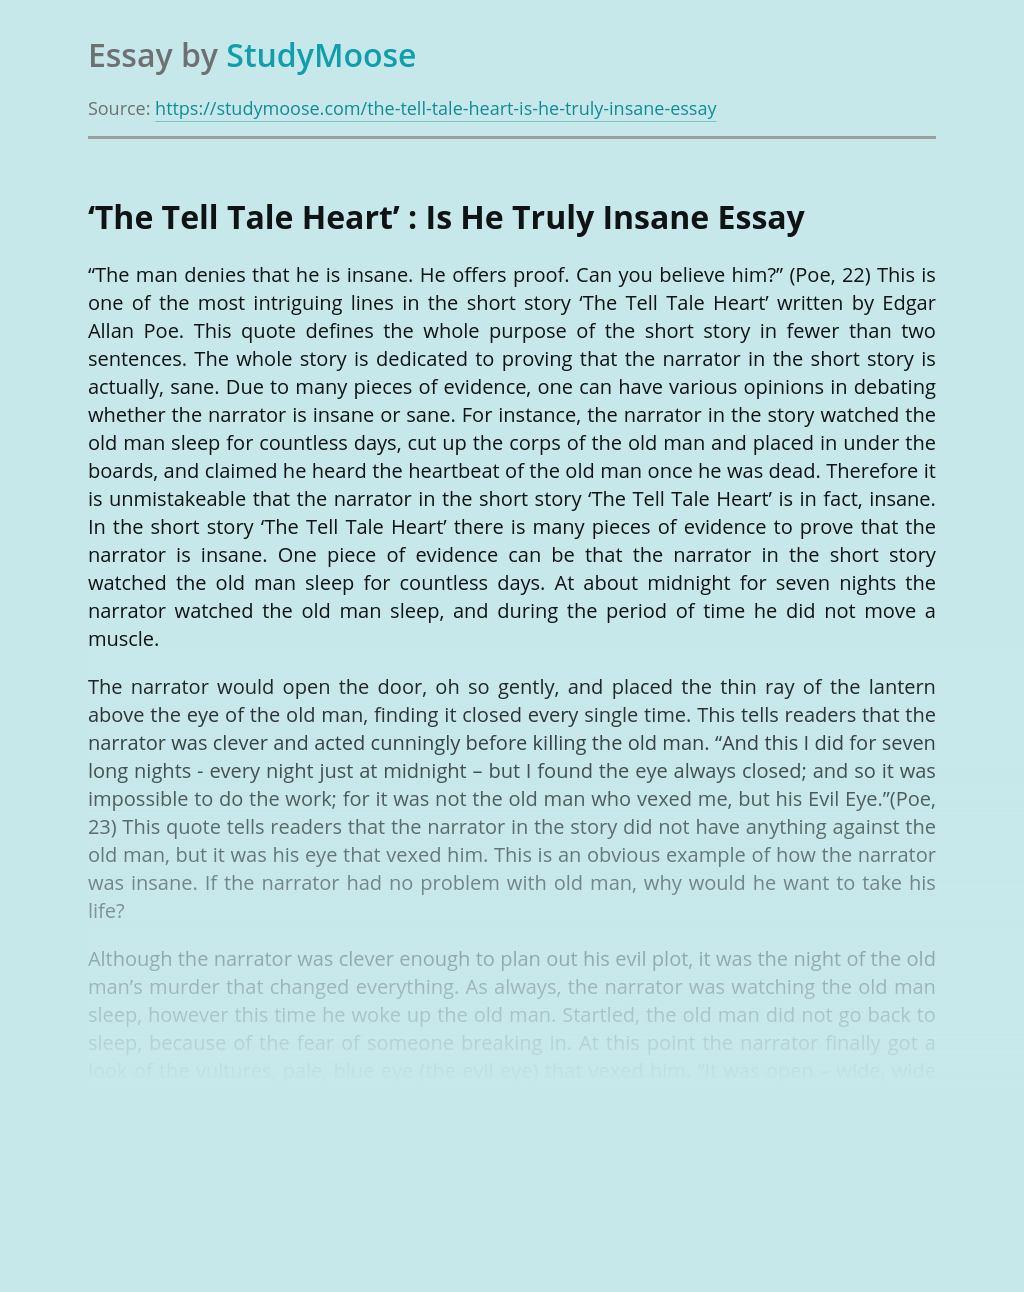 'The Tell Tale Heart' : Is He Truly Insane